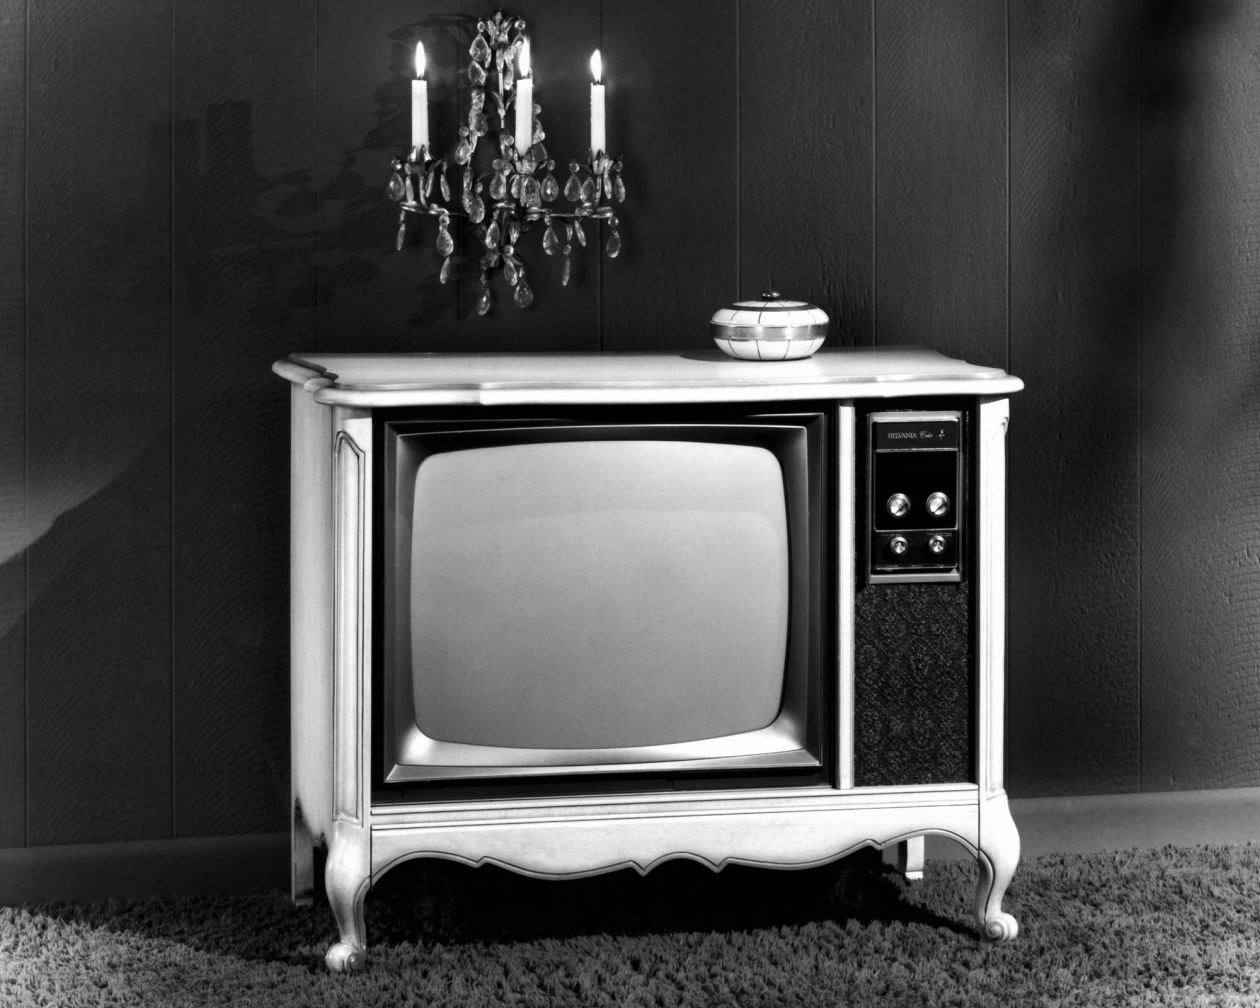 Vintage Photos Show Old Tv Sets From The 1940 U0026 39 S Through 1960 U0026 39 S